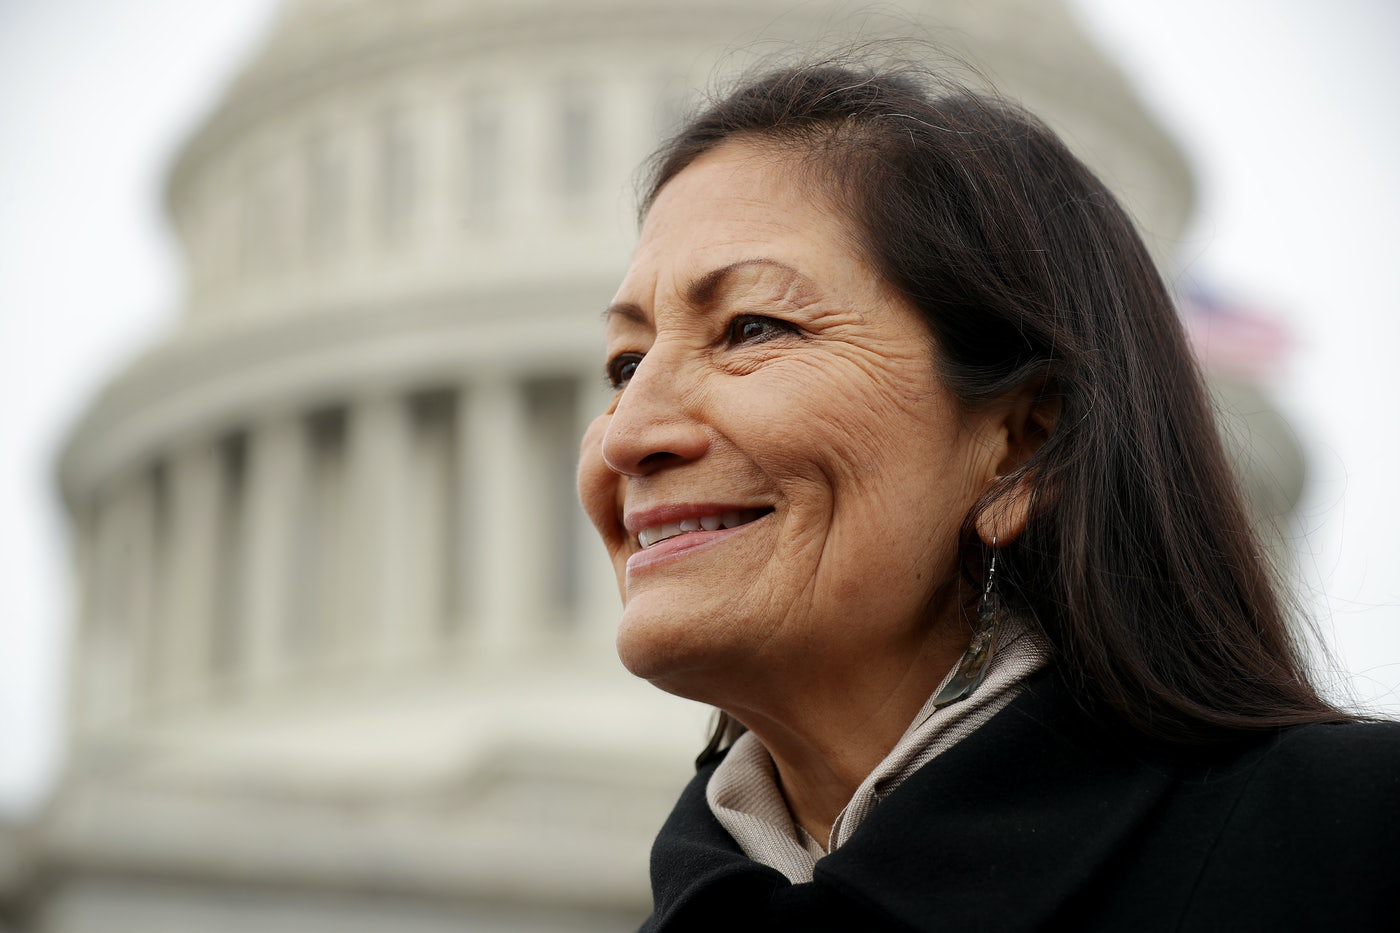 New Mexico congresswoman Deb Haaland smiles in front of the Capitol building